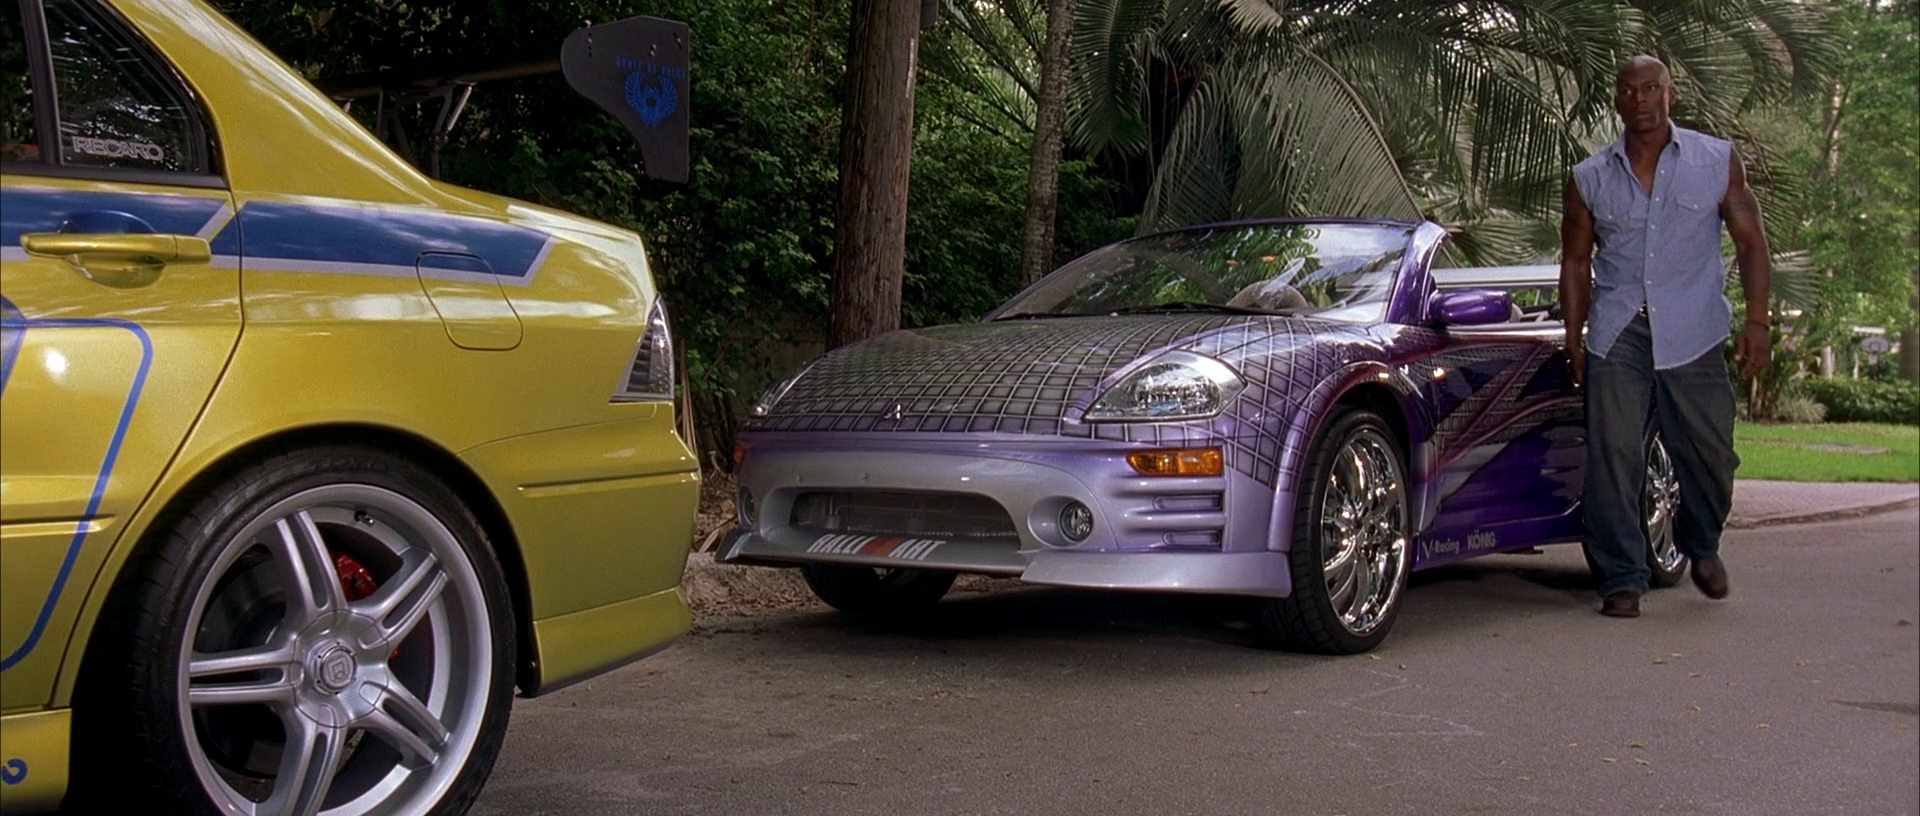 Mitsubishi spyder fast and furious